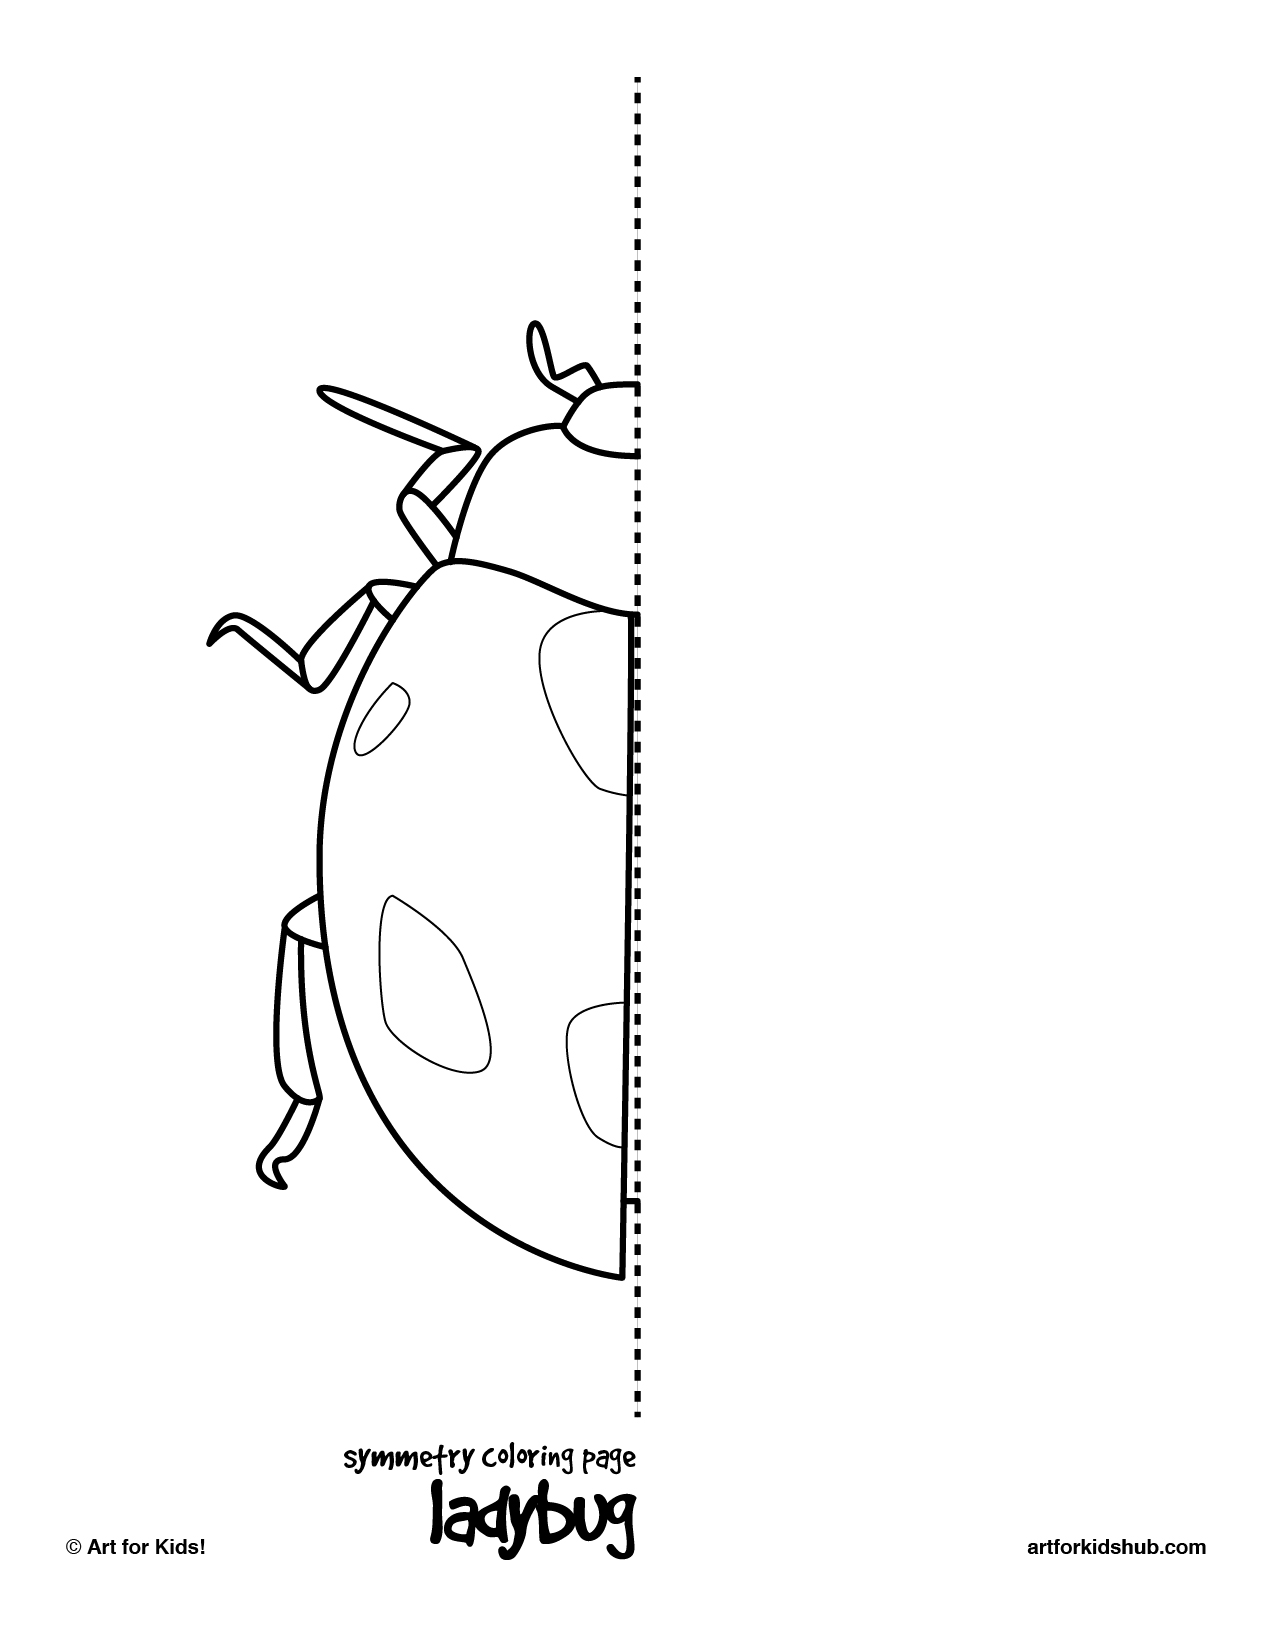 10 free coloring pages bug symmetry art for kids hub ladybug symmetry pooptronica Gallery